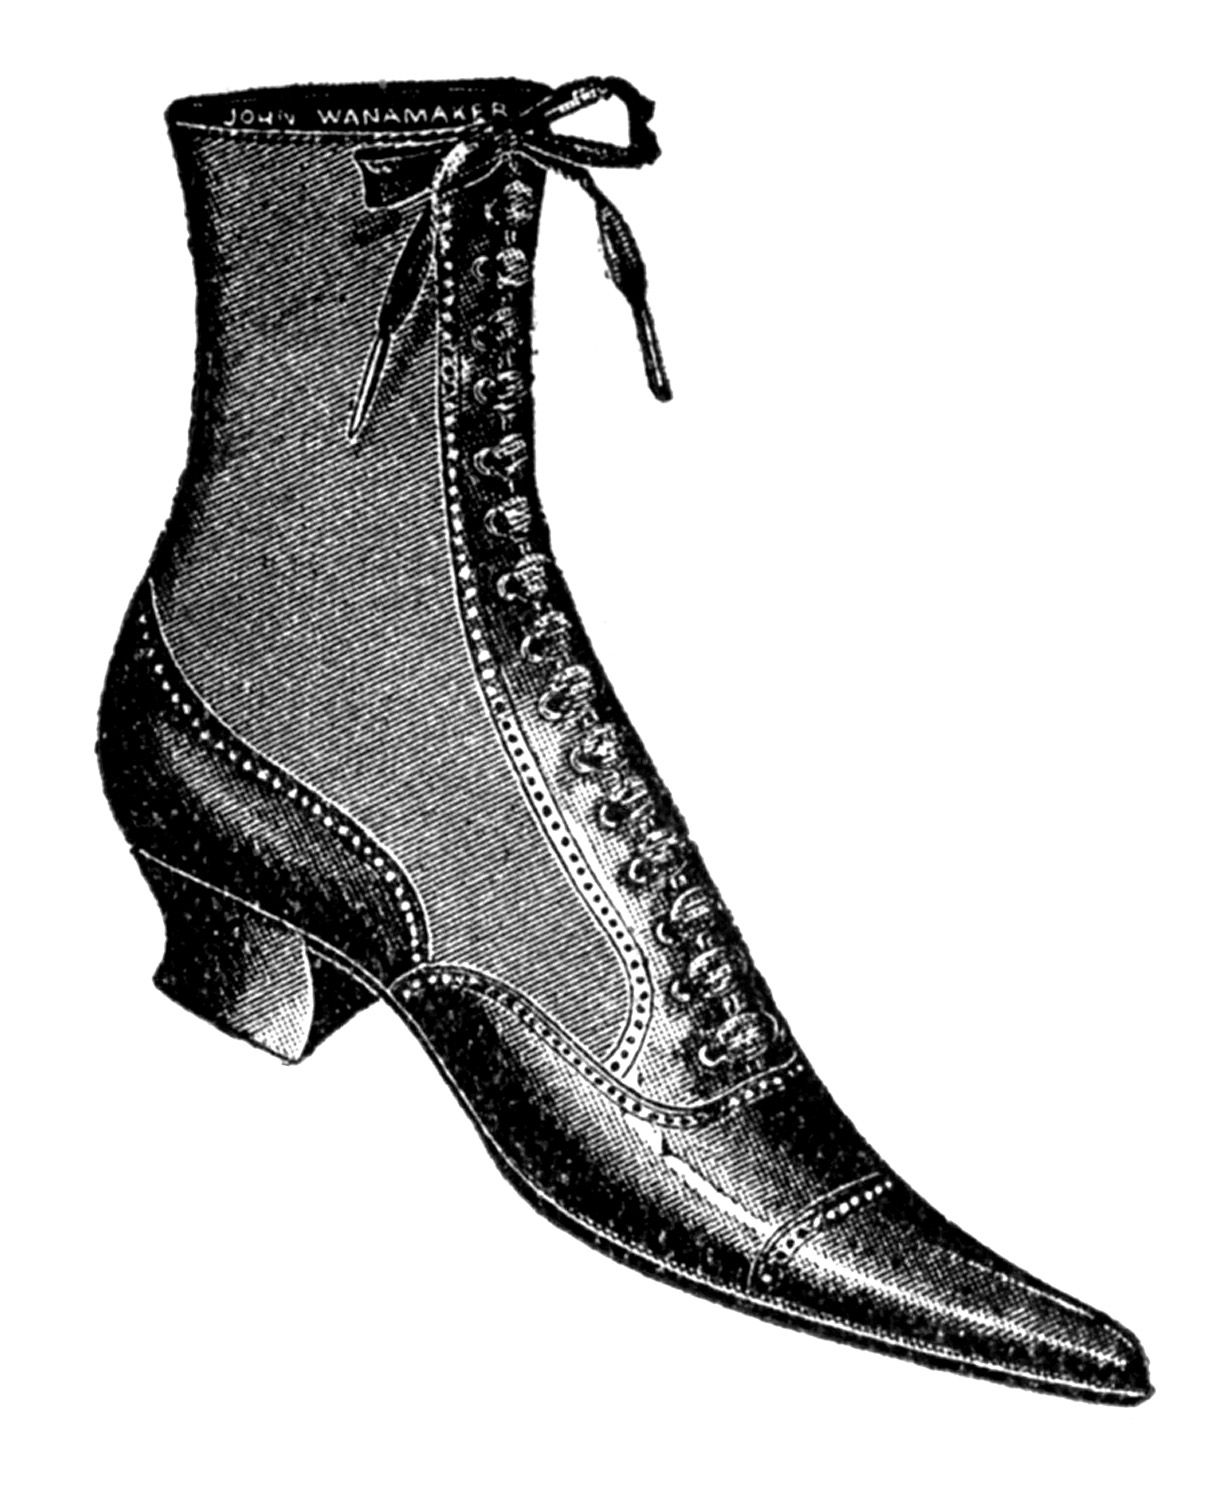 Vintage boot clipart jpg library download Vintage Clip Art - Ladies Shoes and Boots | Scrapbooking ... jpg library download